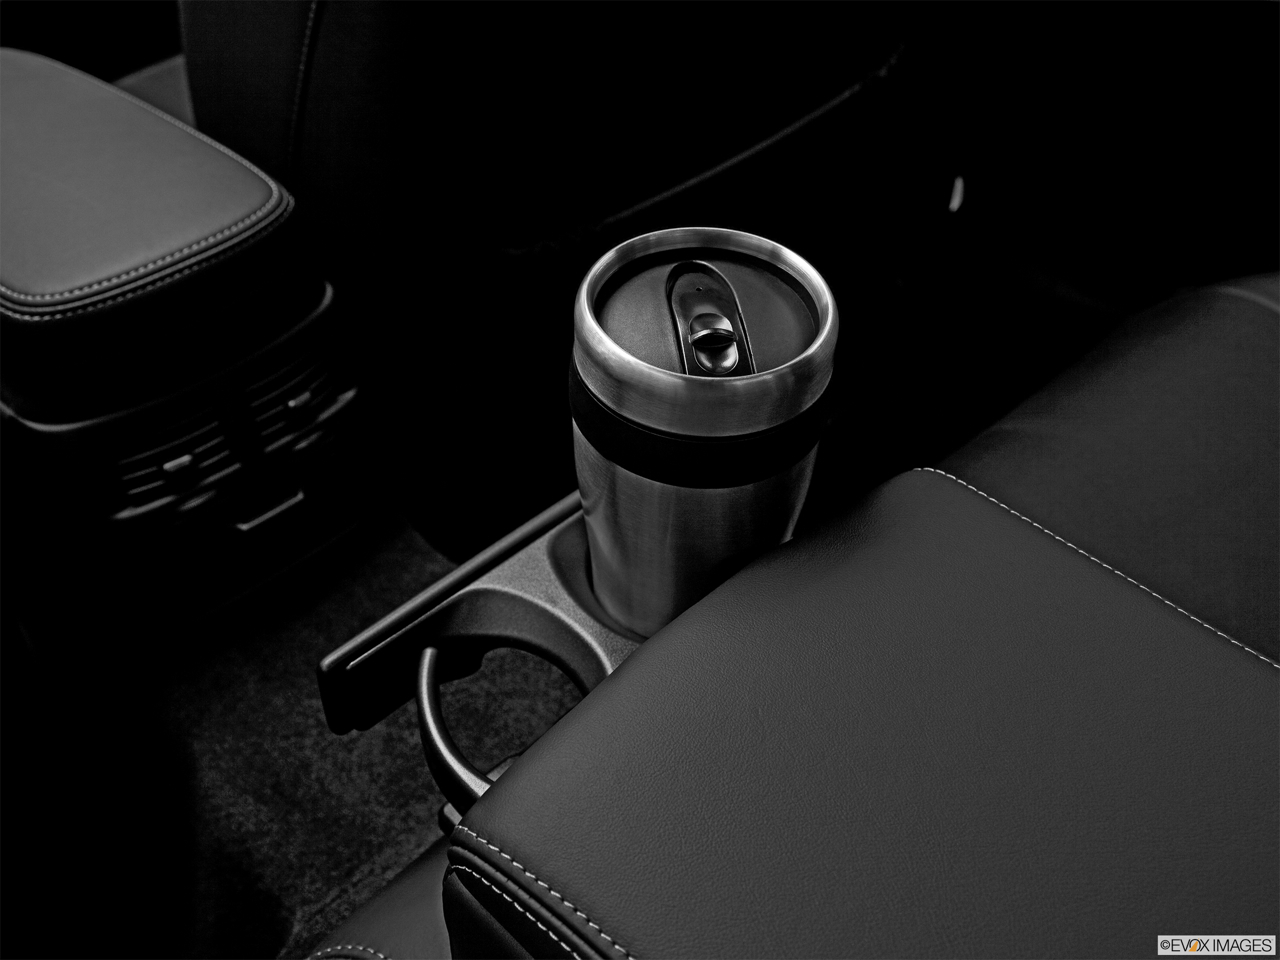 2011 Lexus IS 250 IS250 Cup holder prop (quaternary).